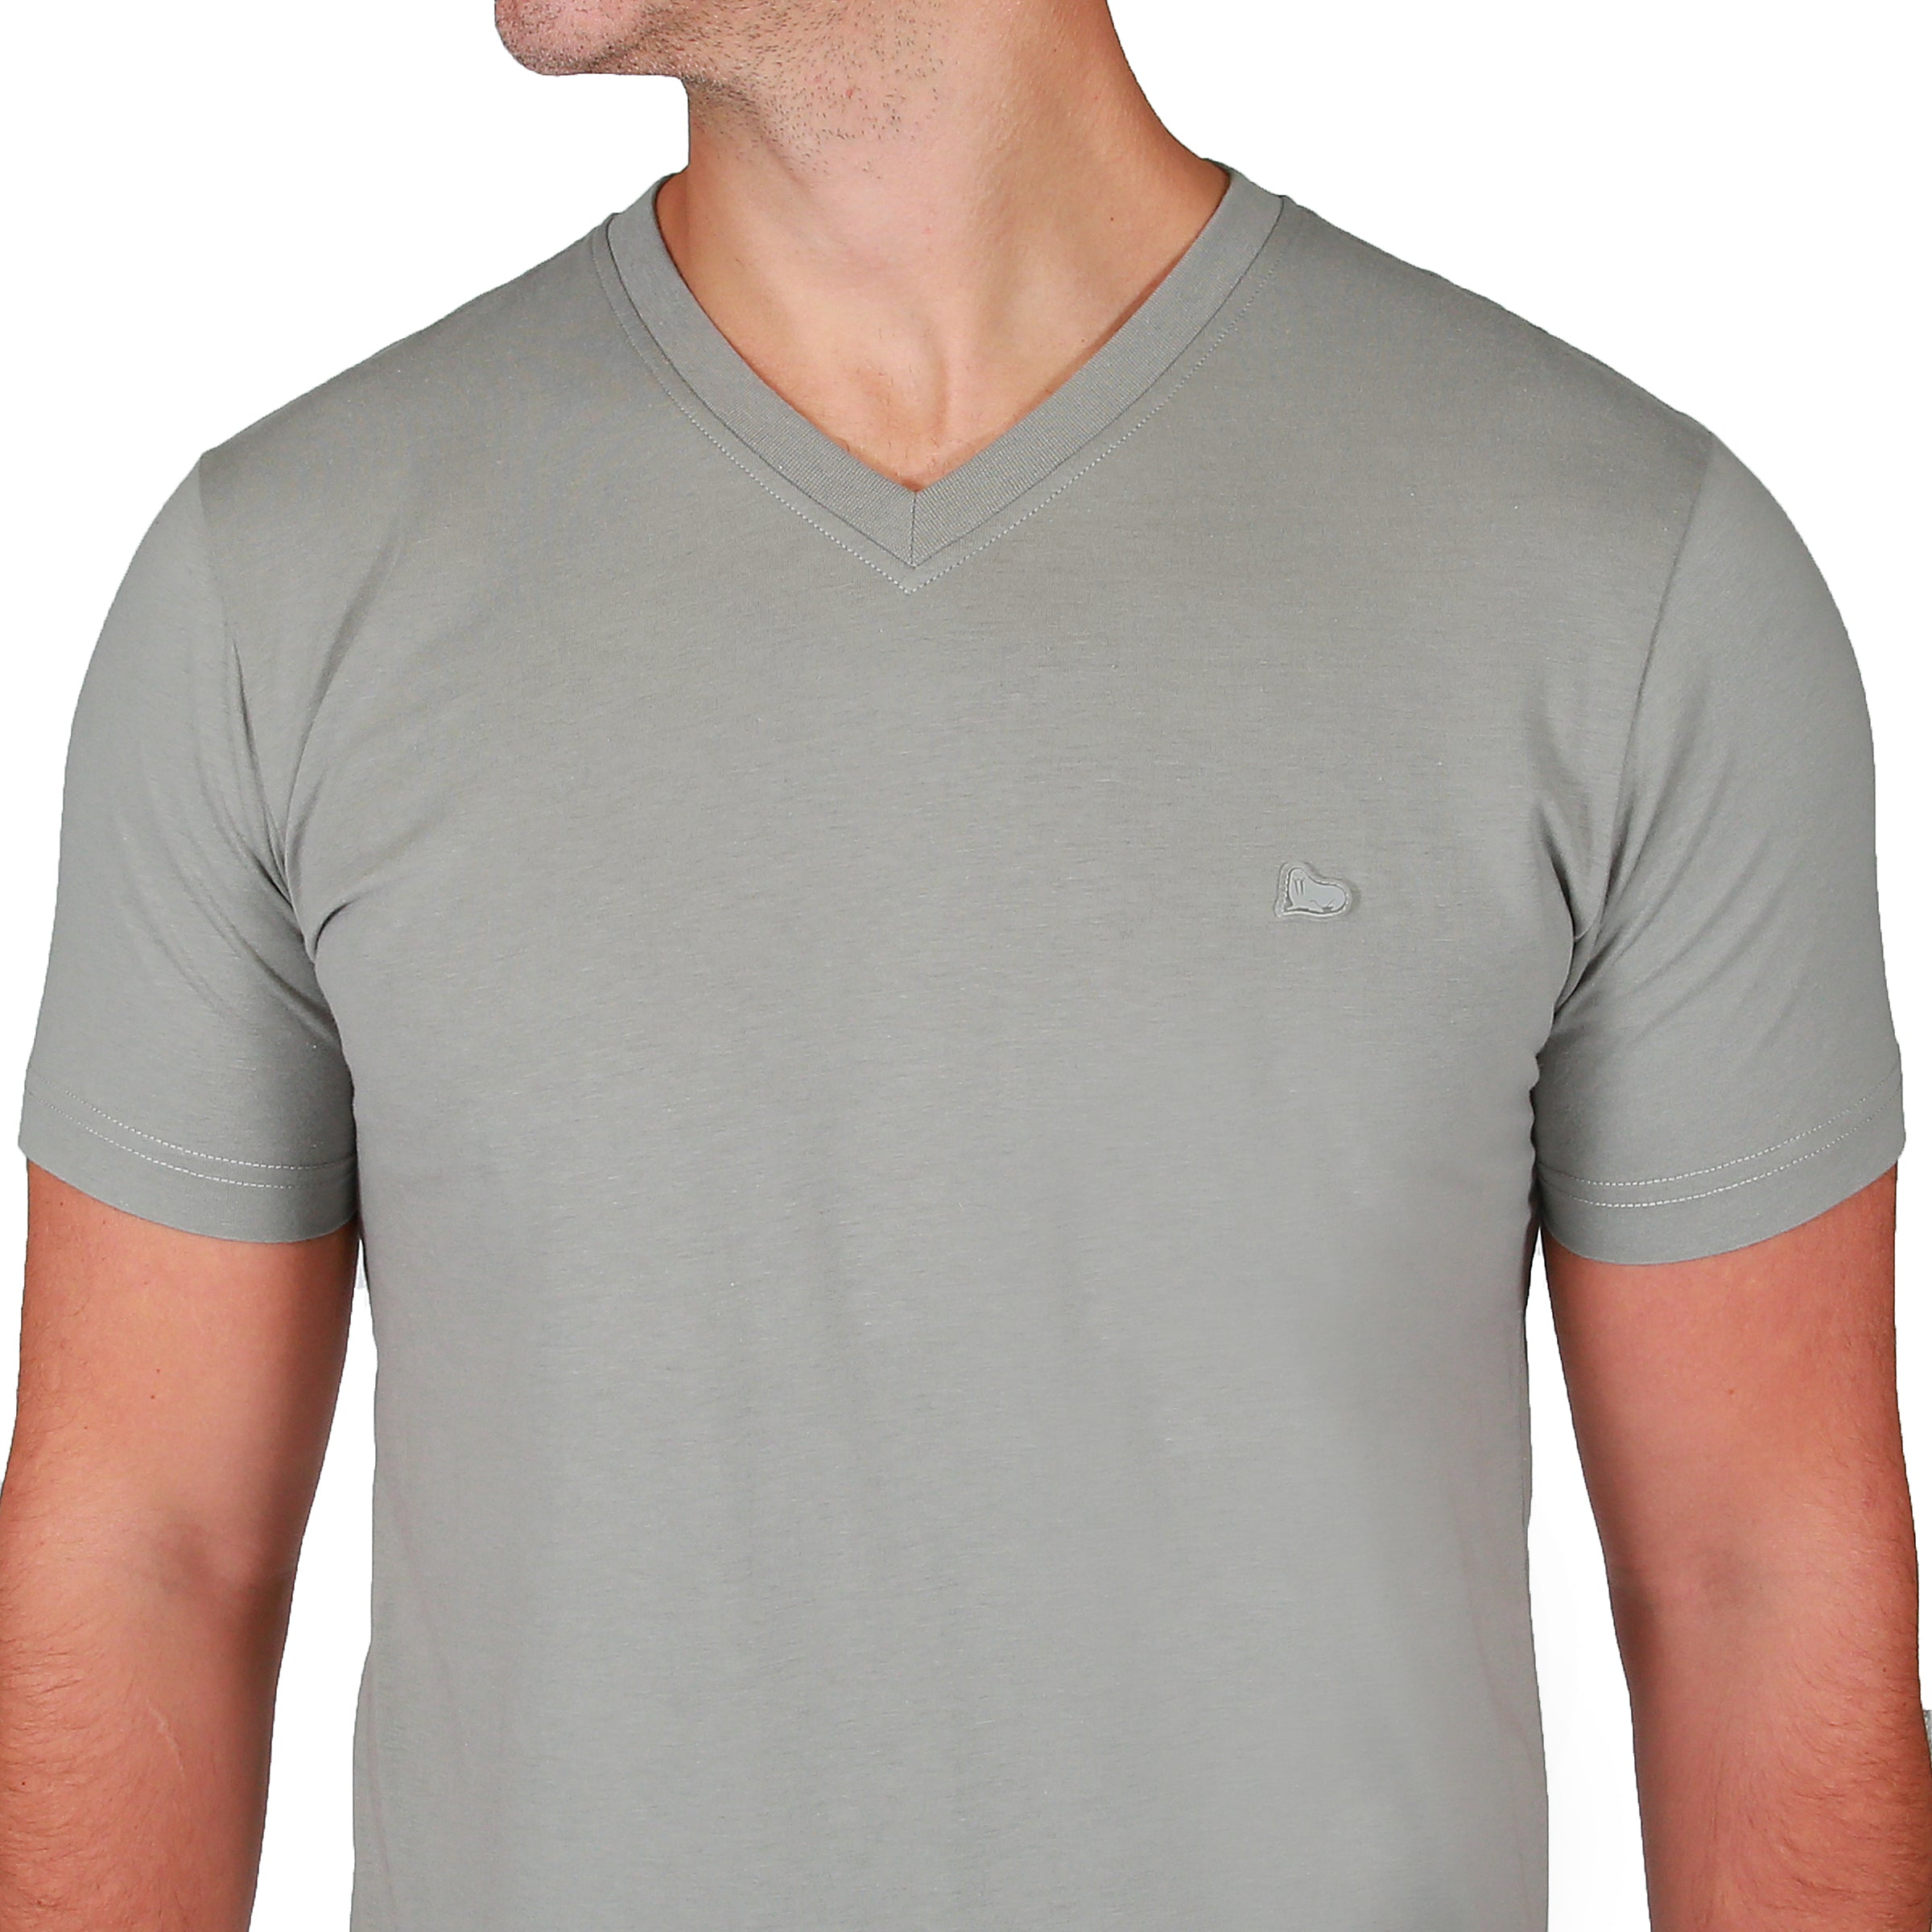 Theo V-Neck Tee Shirt - Neutral Grey by  Walrus Apparel